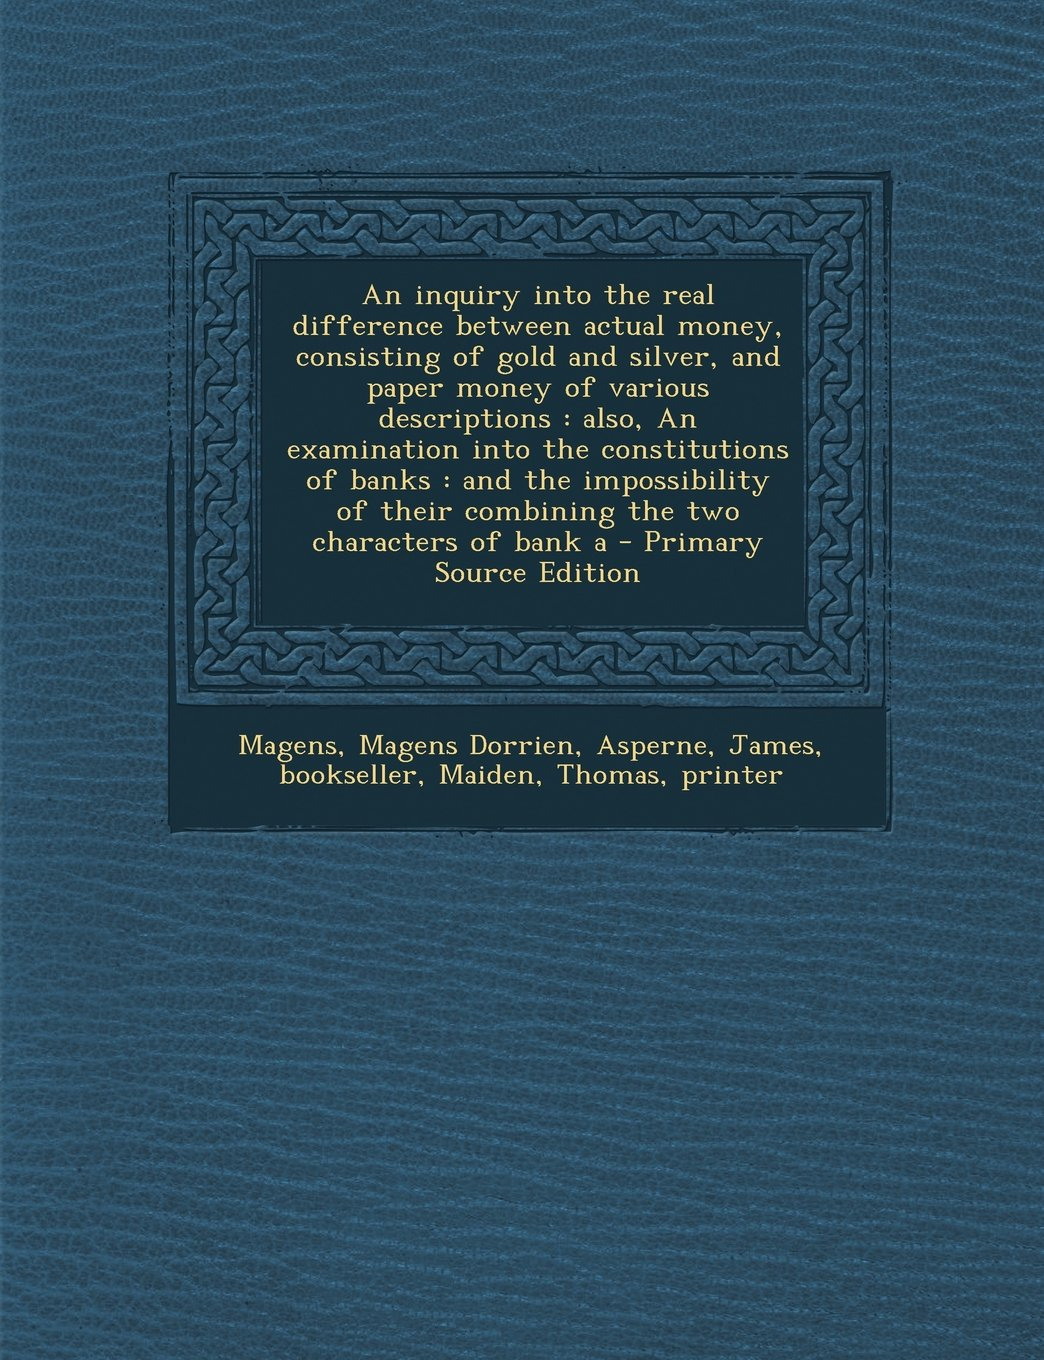 Download An inquiry into the real difference between actual money, consisting of gold and silver, and paper money of various descriptions: also, An examination ... their combining the two characters of bank a ebook